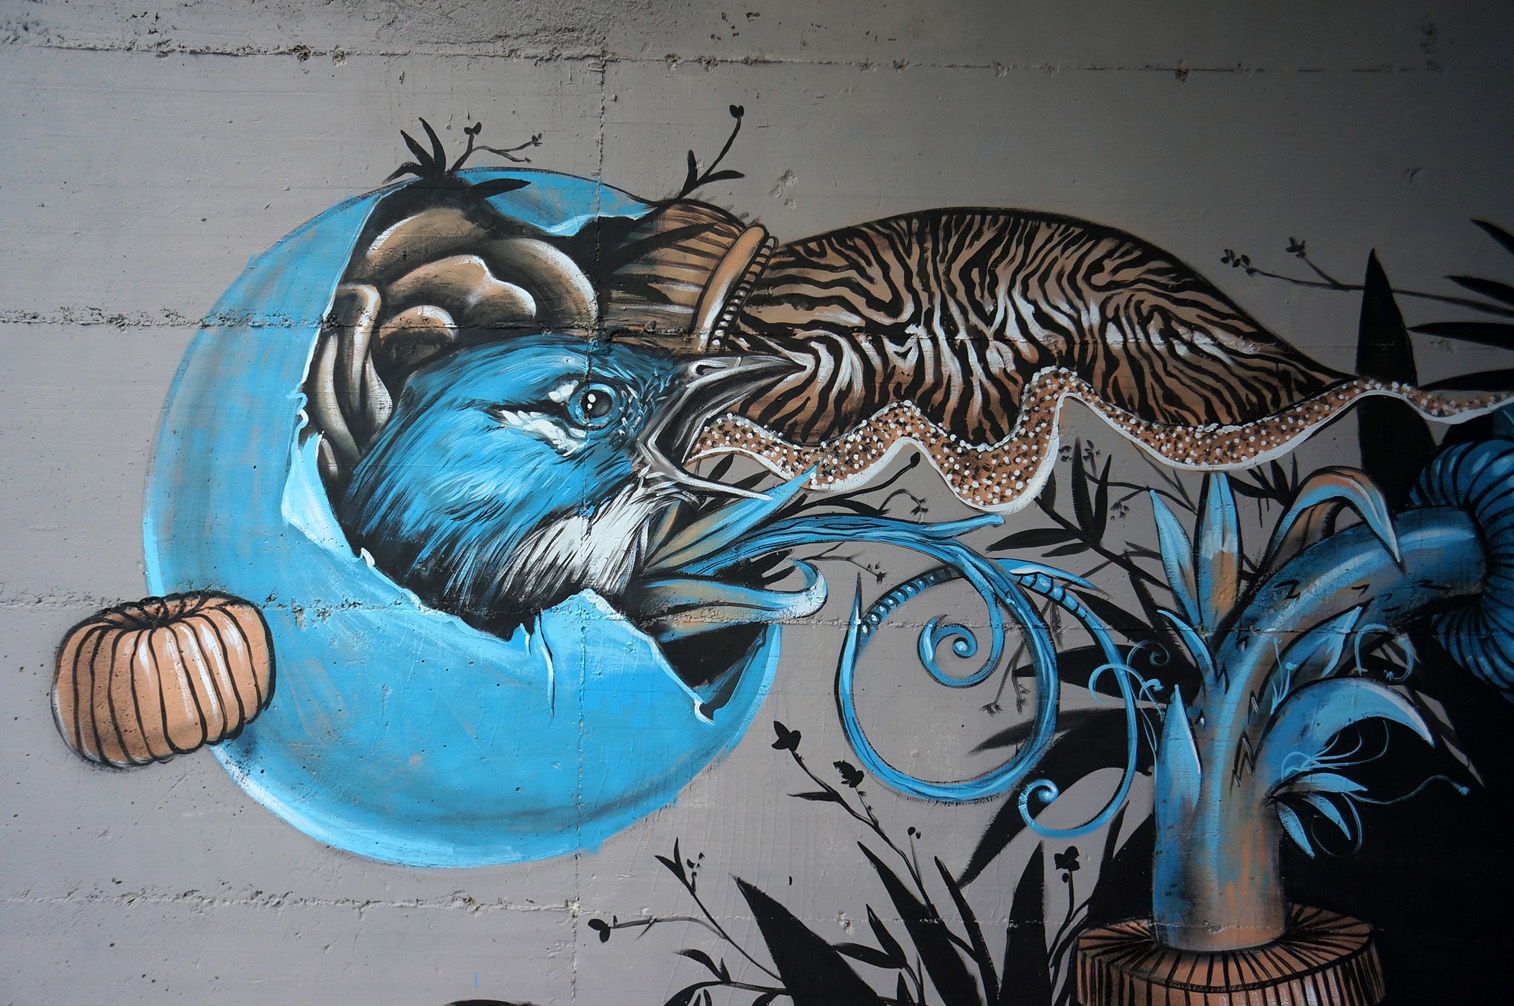 kraser-new-mural-for-urban-canvas-in-varese-03